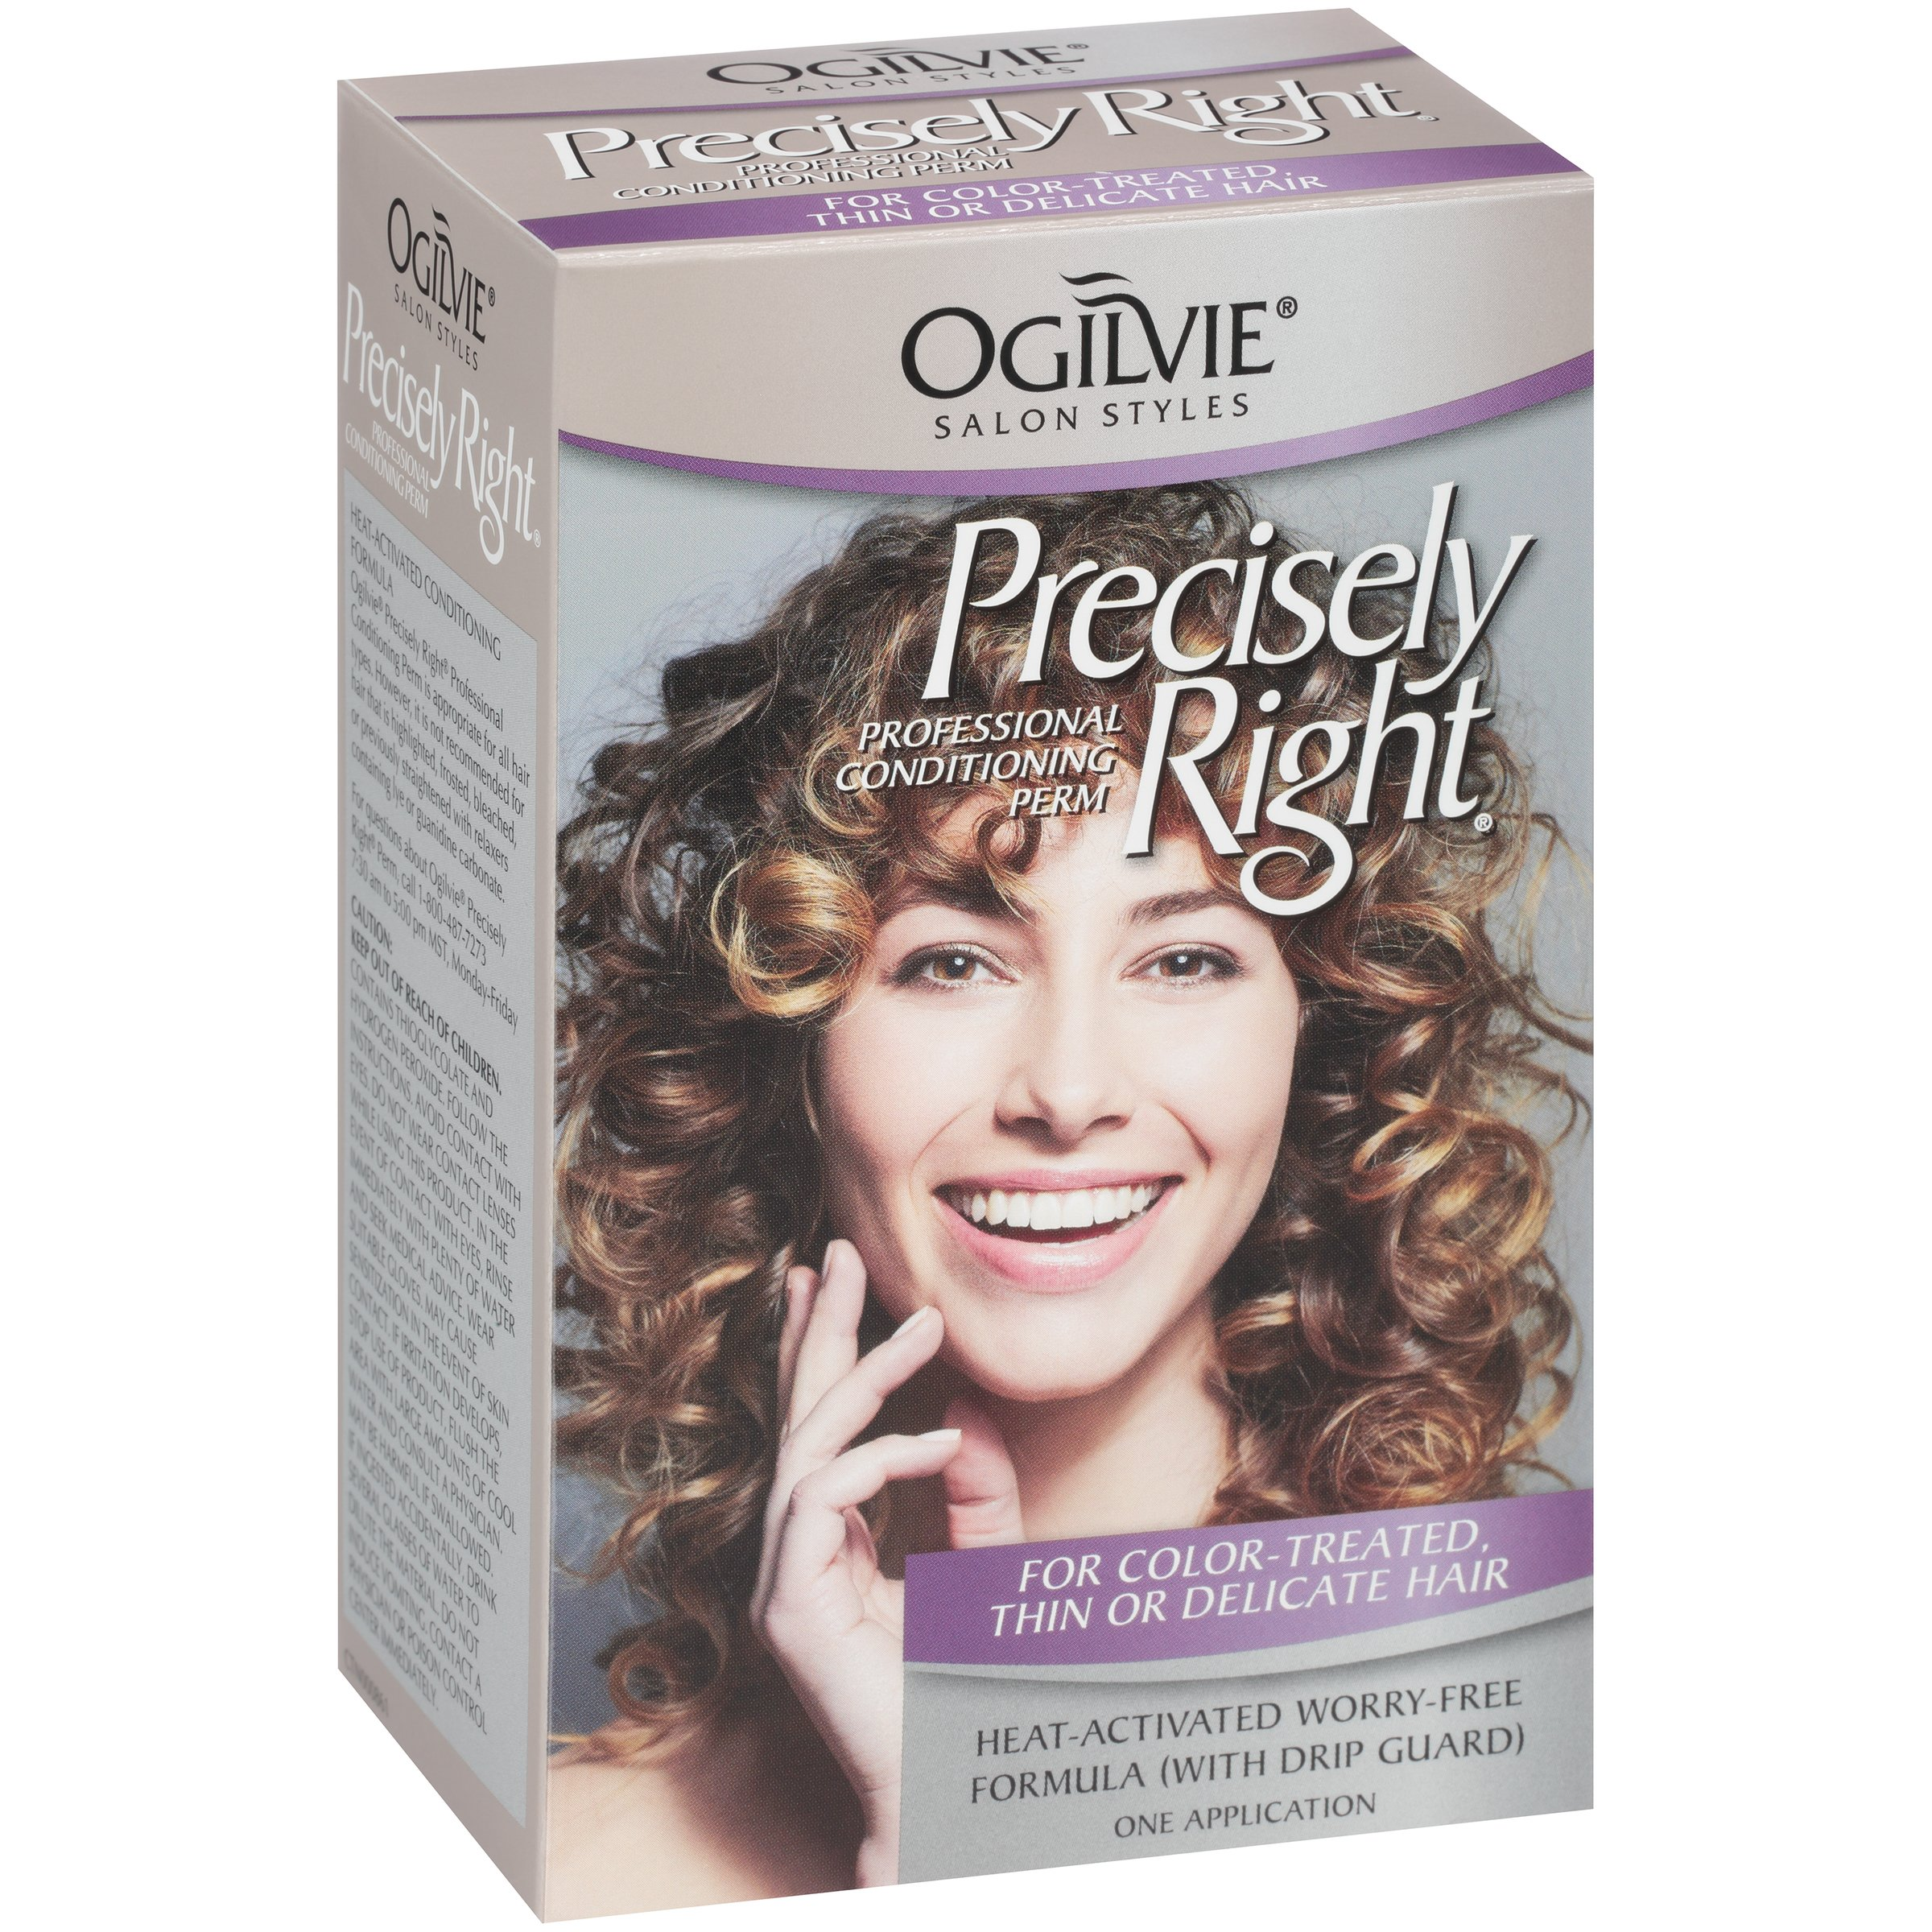 Ogilvie Salon Styles Professional Conditioning Perm For Color